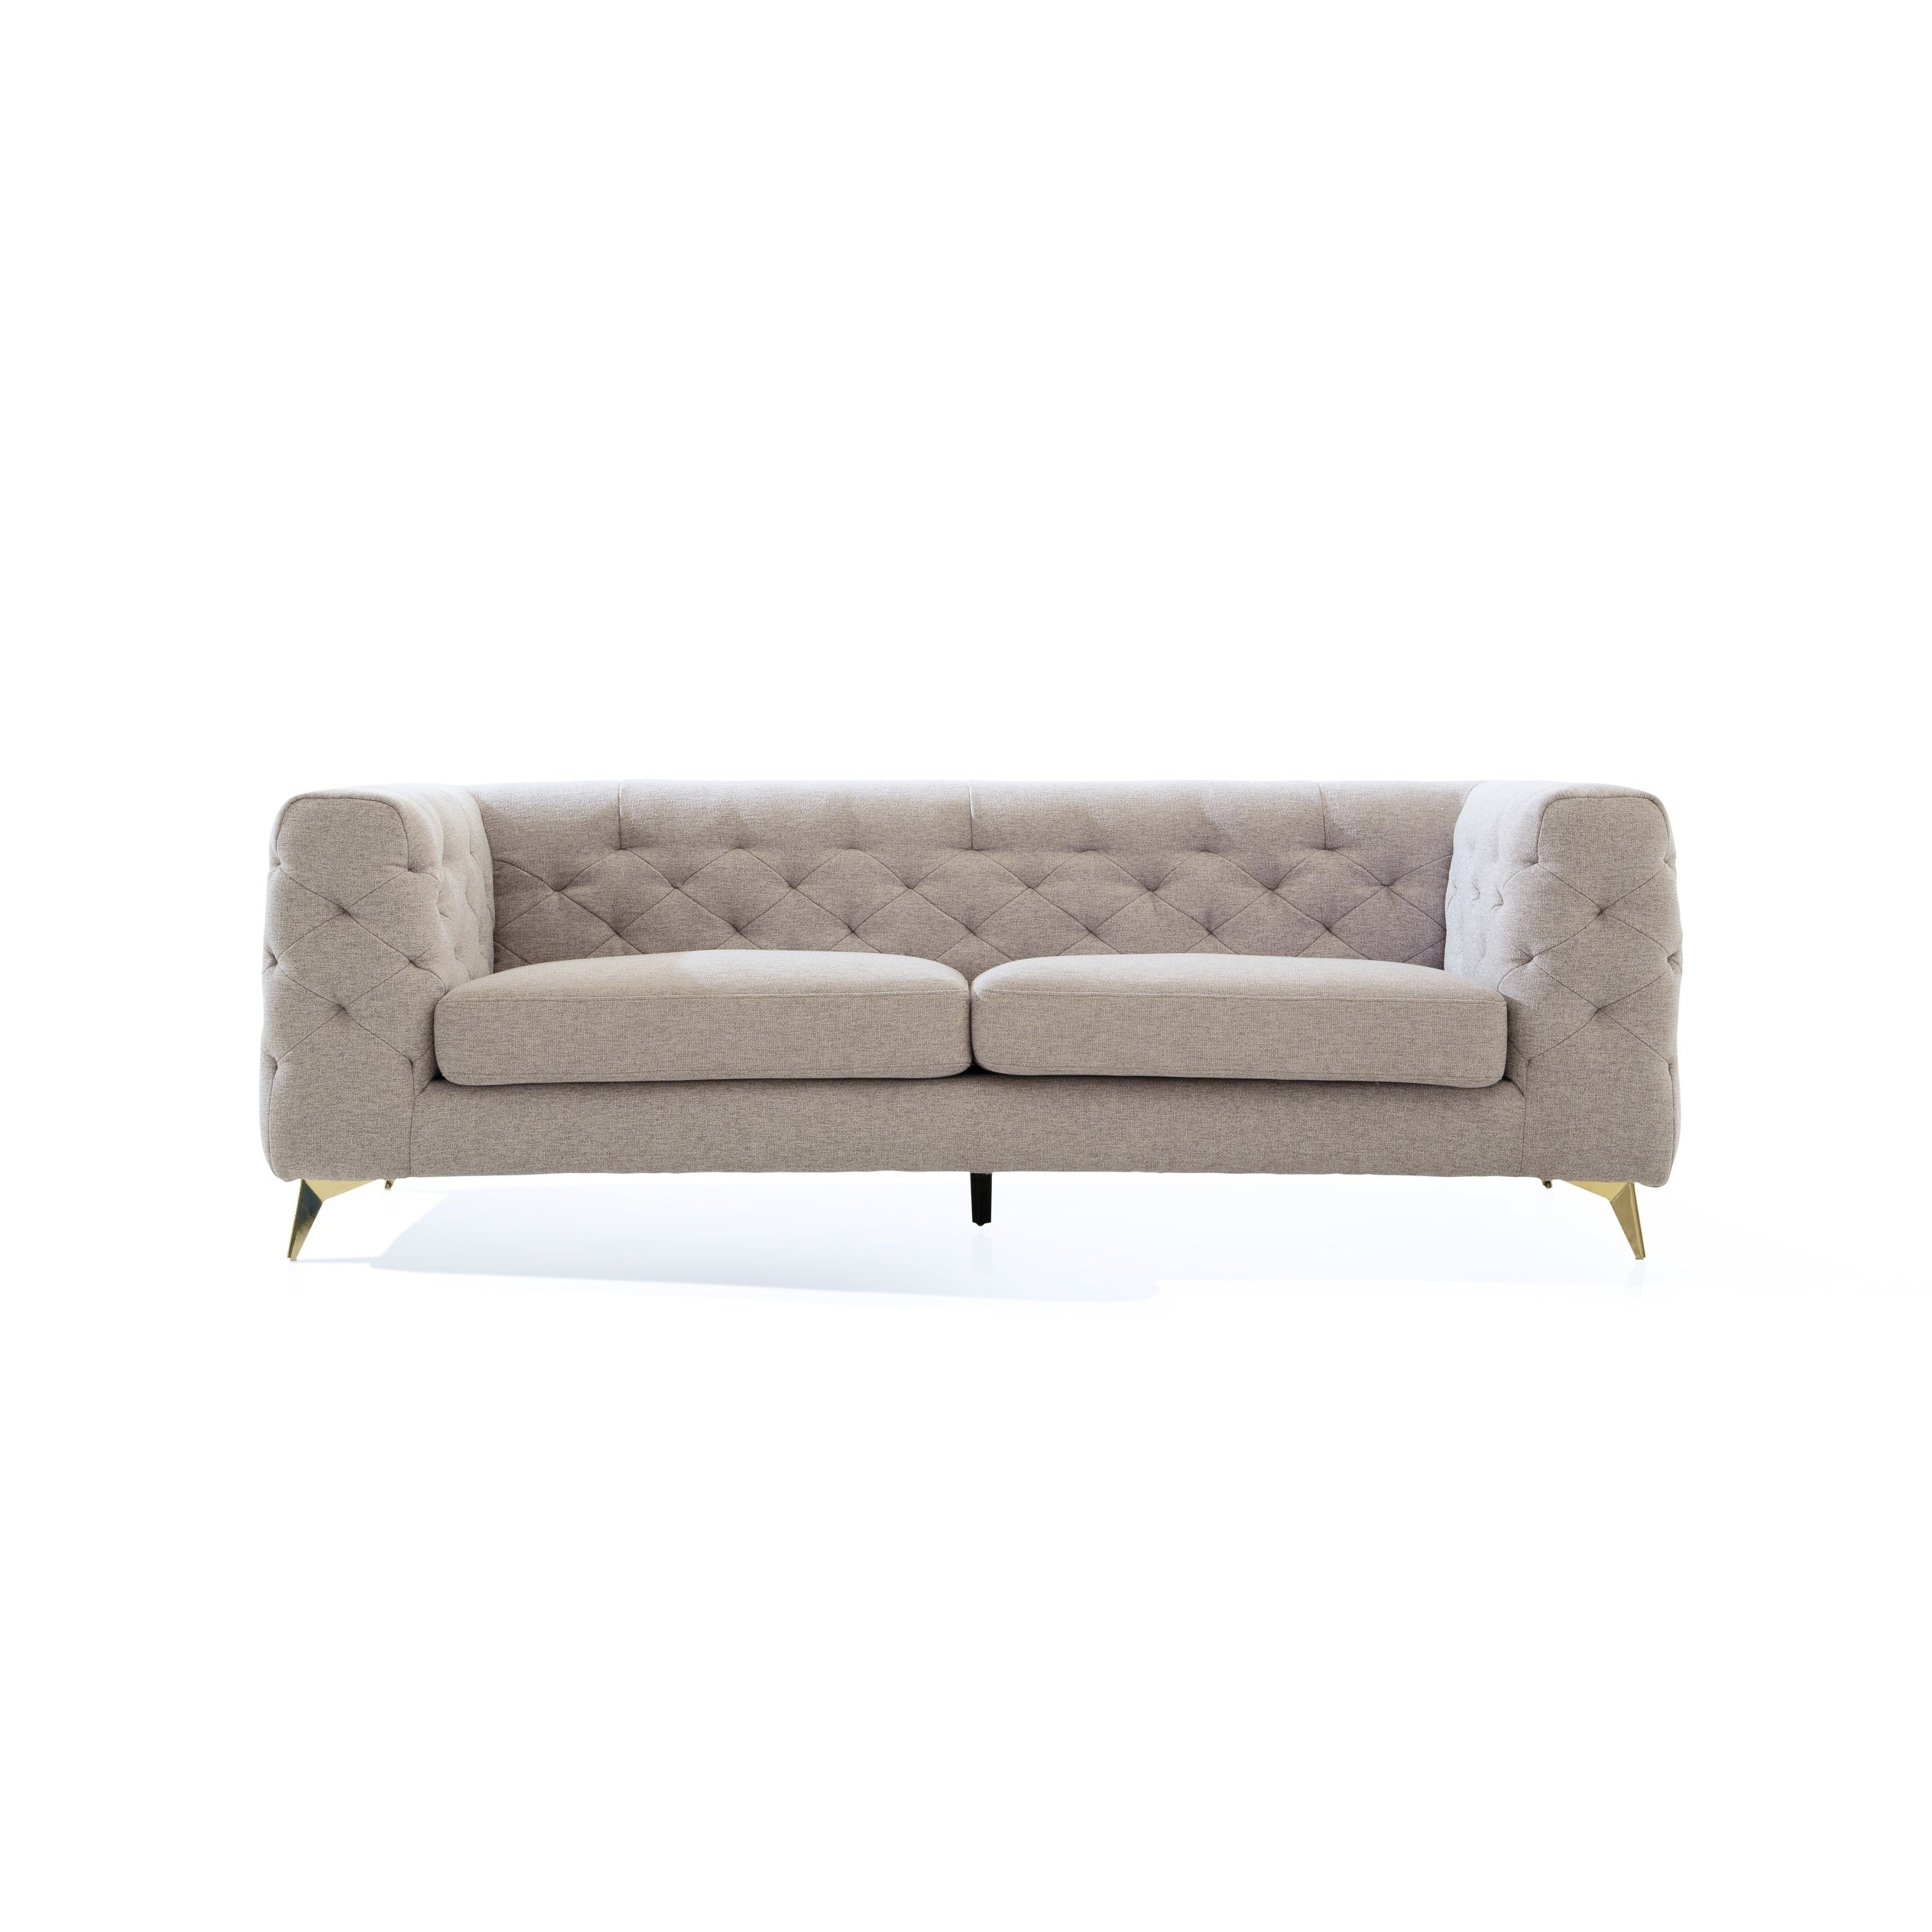 Outstanding Chic Home Carlyle Linen Textured Upholstery Tufted Shelter Arm Sofa Cjindustries Chair Design For Home Cjindustriesco